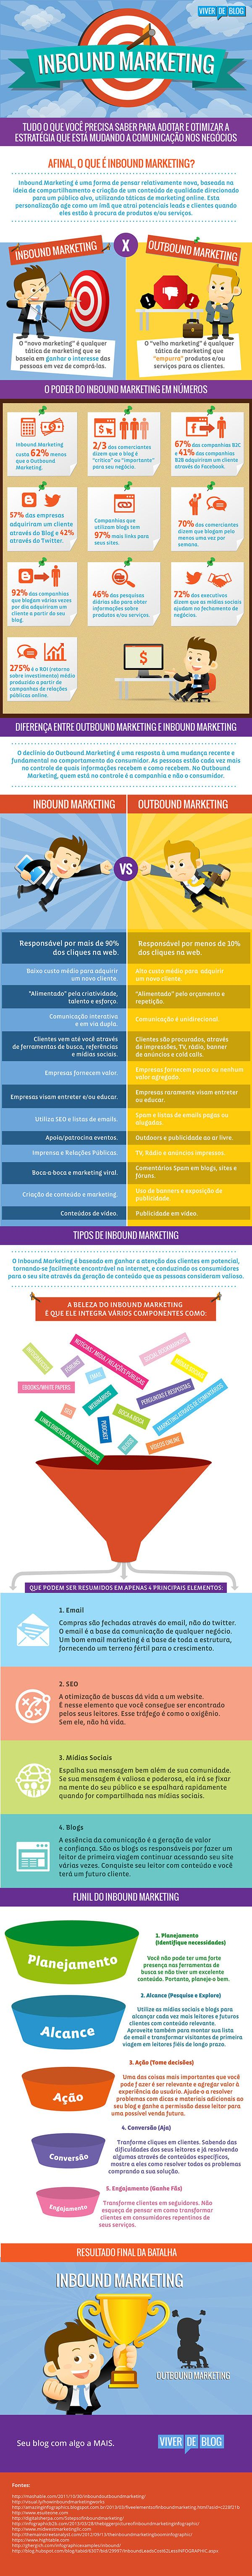 Gráfico sobre Inbound Marketing. Encontrei no Viver de Blog :)